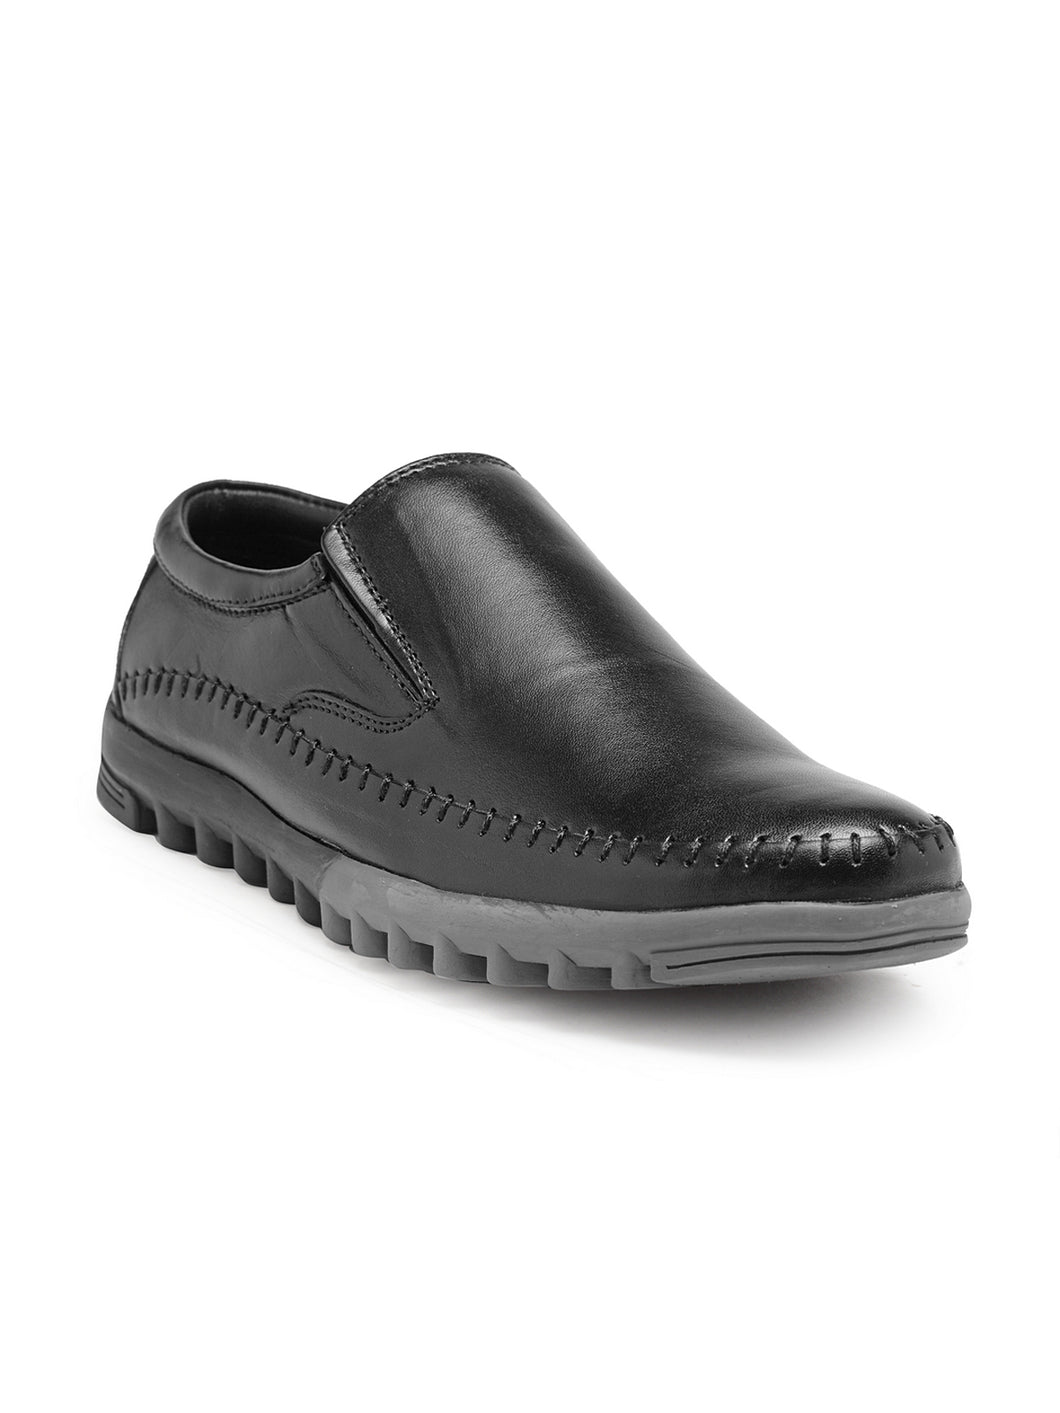 Teakwood Genuine Leather Black Loafers